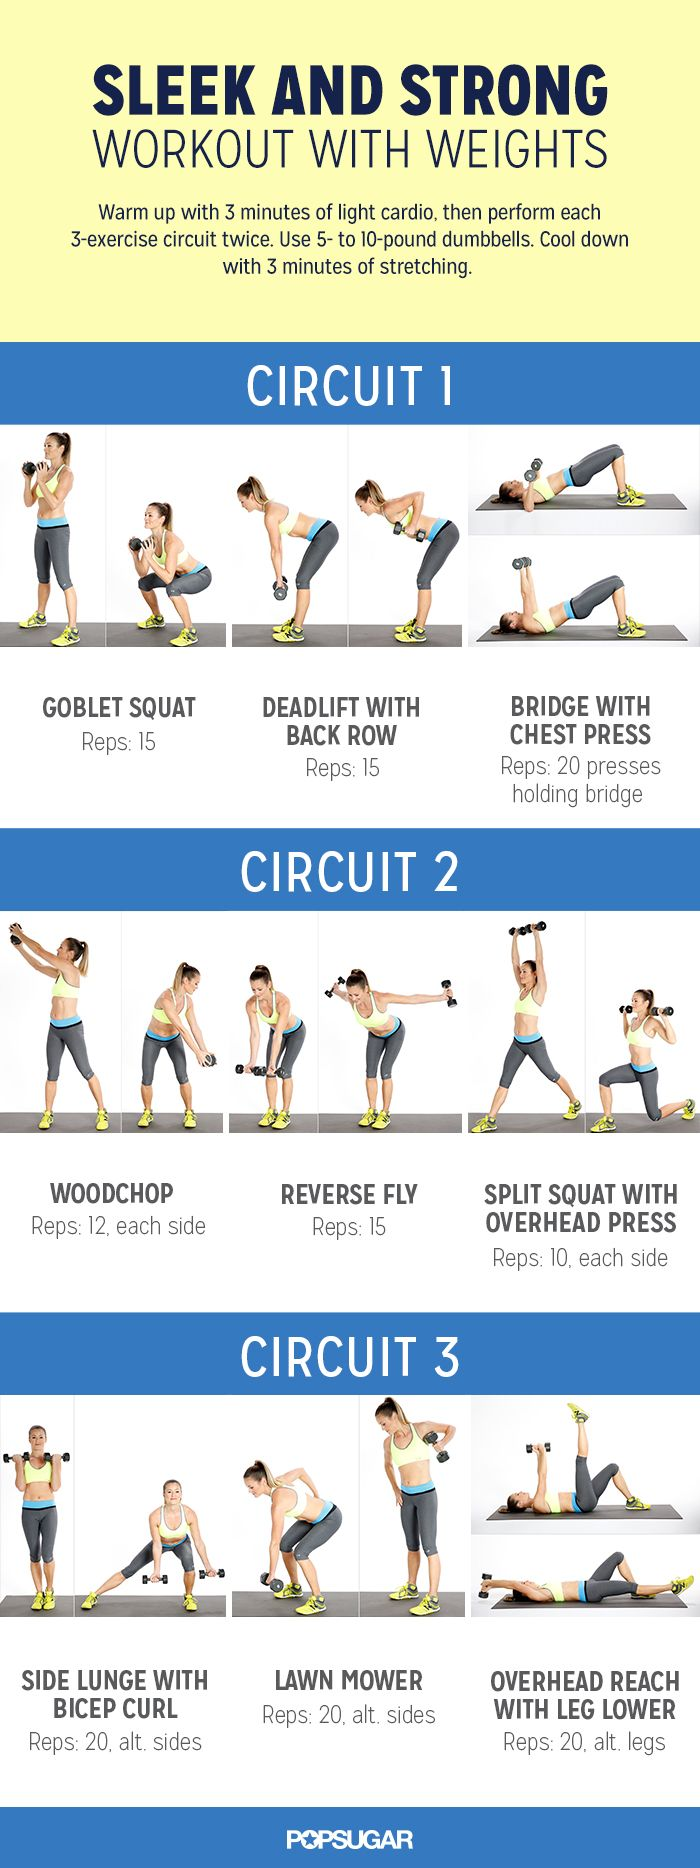 The circuit workout you need to get strong, sleek, and toned. Do it while watching TV!